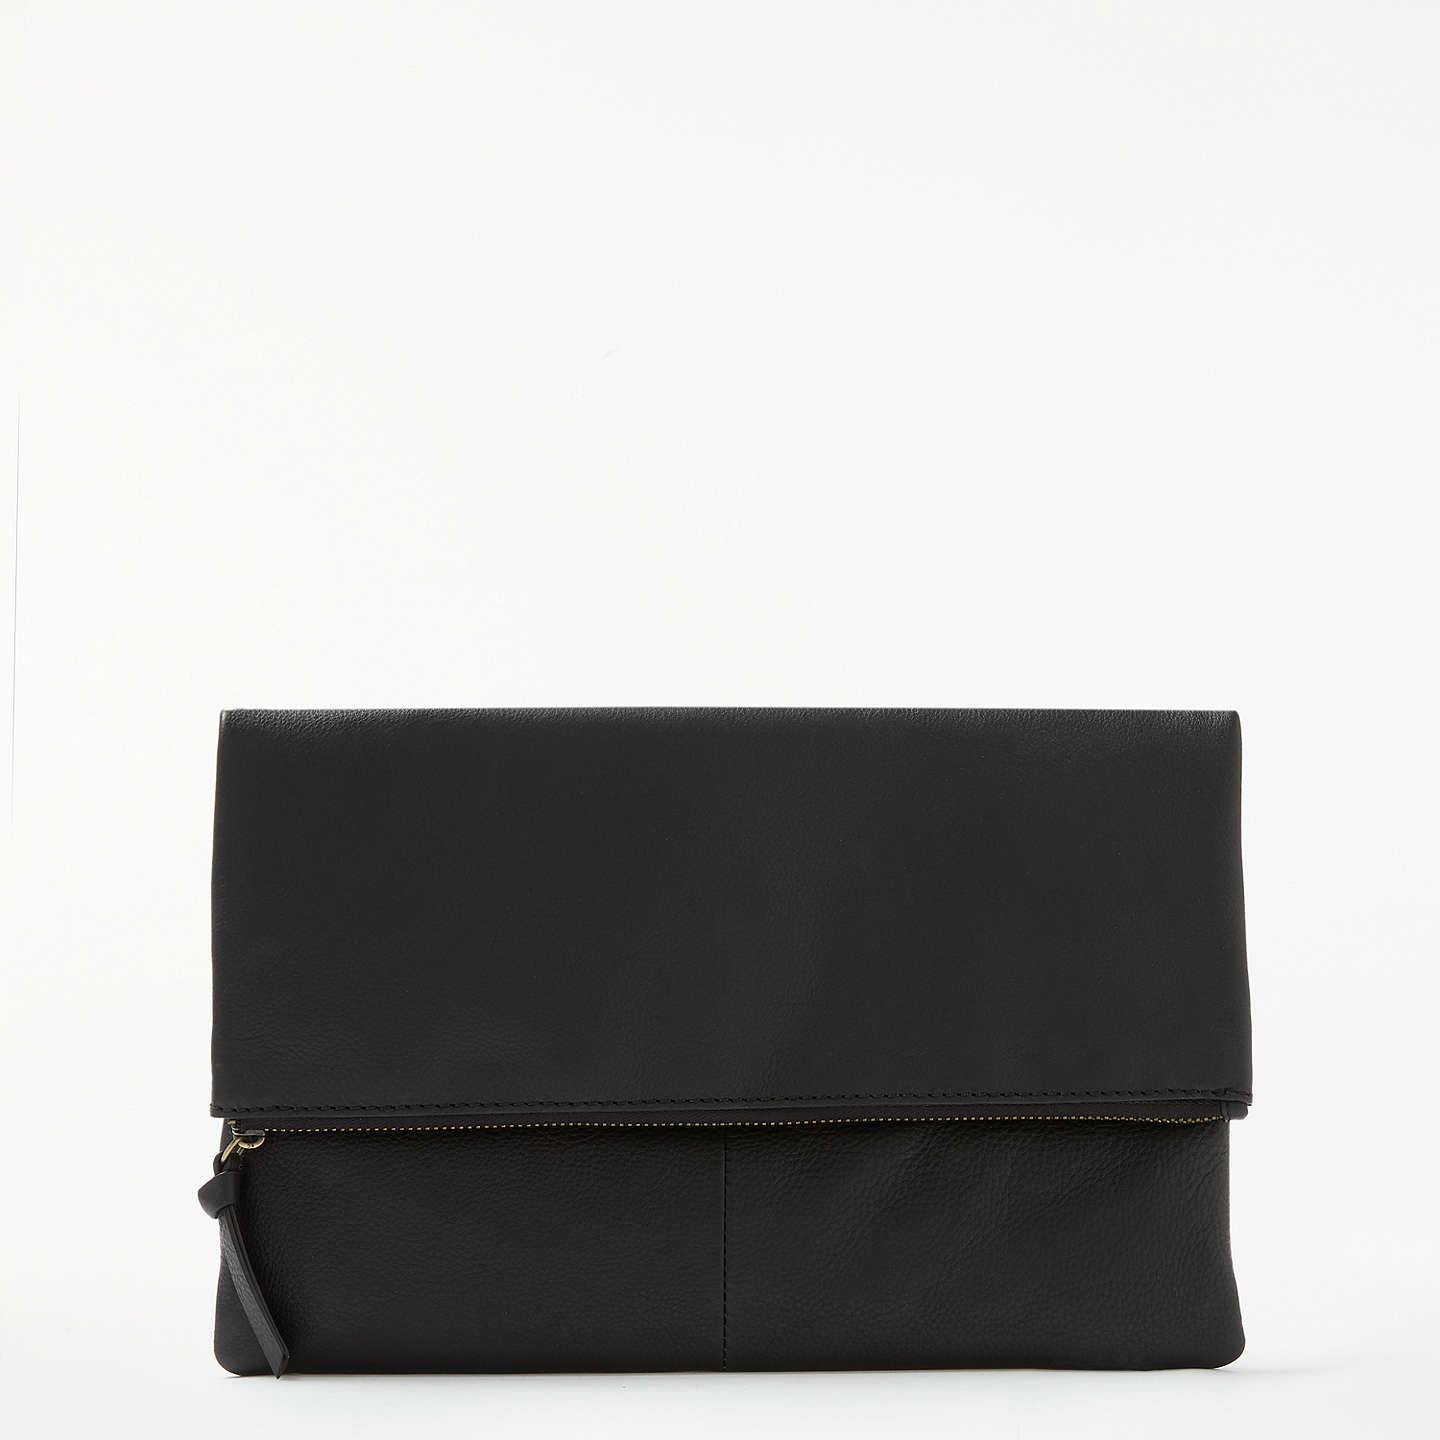 And/Or Madi Leather Clutch Bag, Black by And/Or